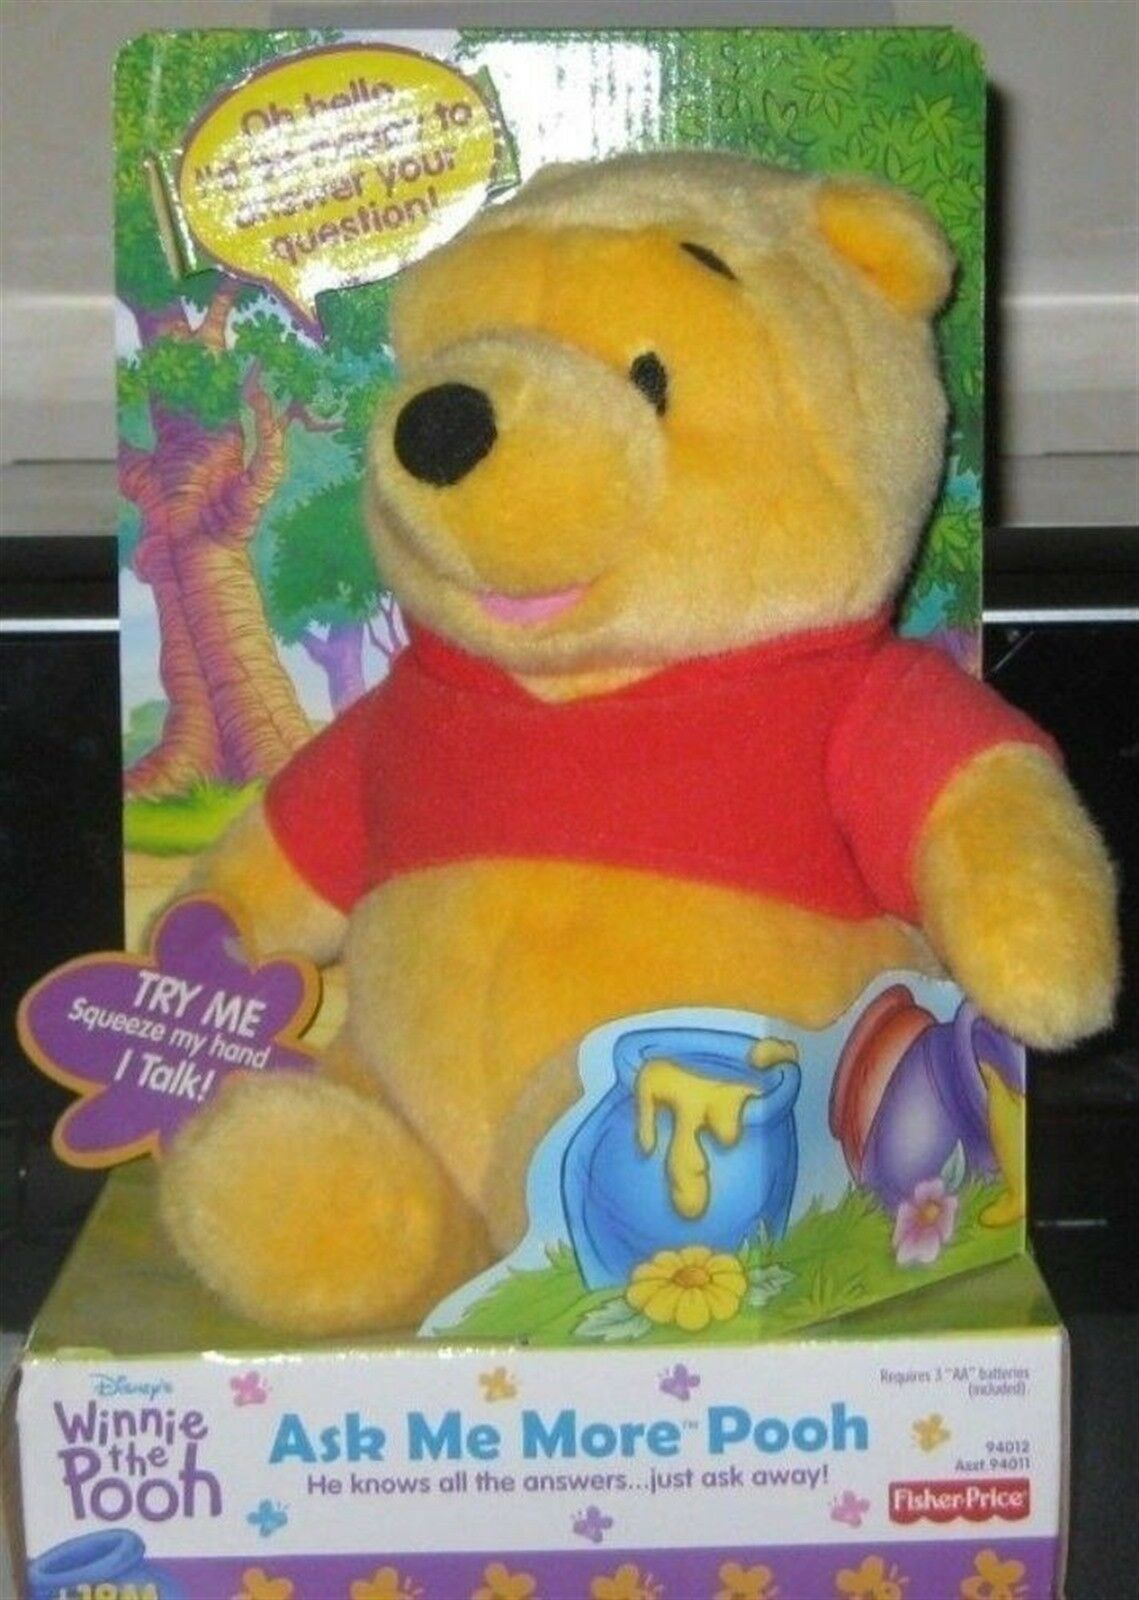 FISHER PRICE - ASK ME MORE POOH  BRAND NEW DATED 2000